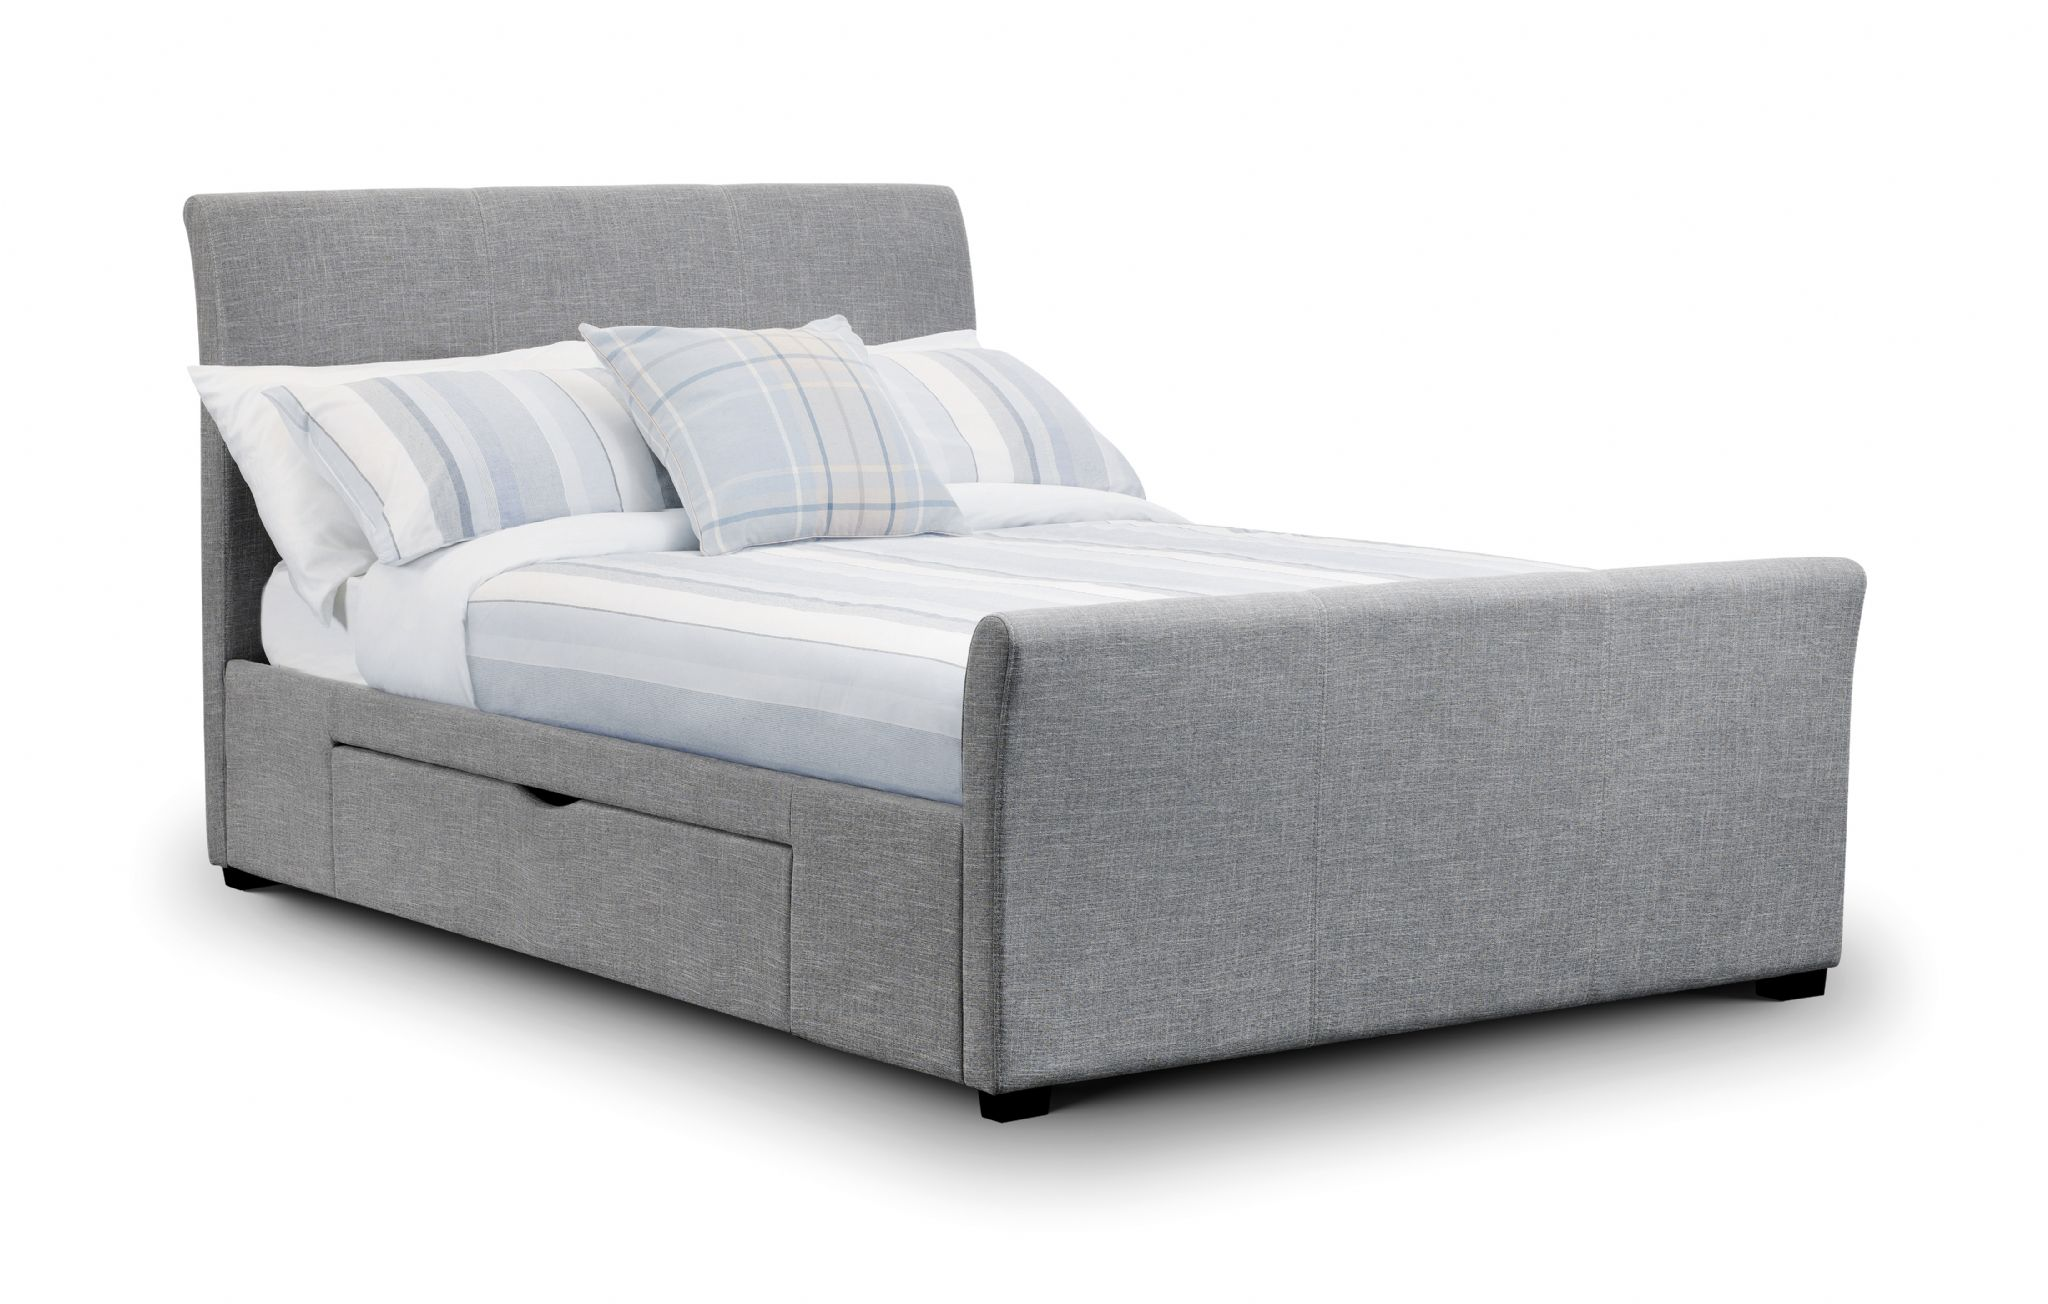 Coru a light grey fabric king size bed with 2 drawers jb136 for Fabric bed frame with storage